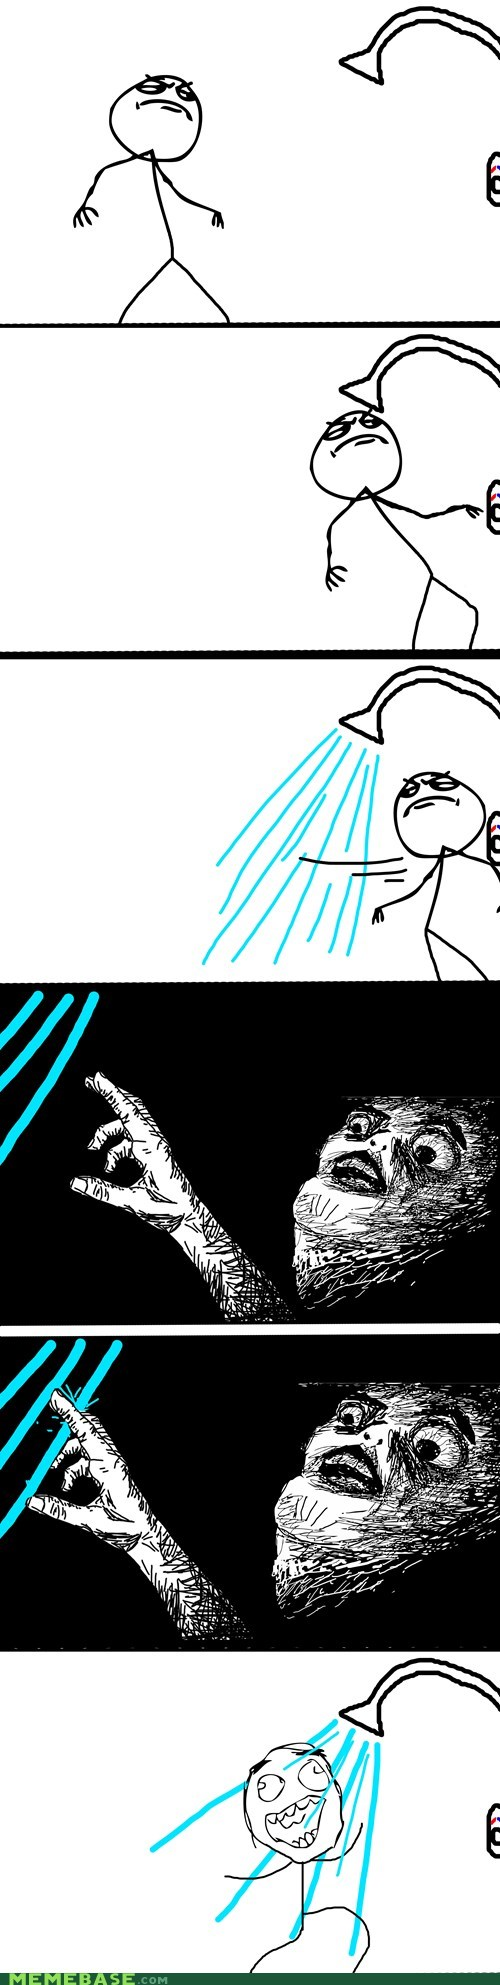 shower temp raisin face Rage Comics - 7053228032